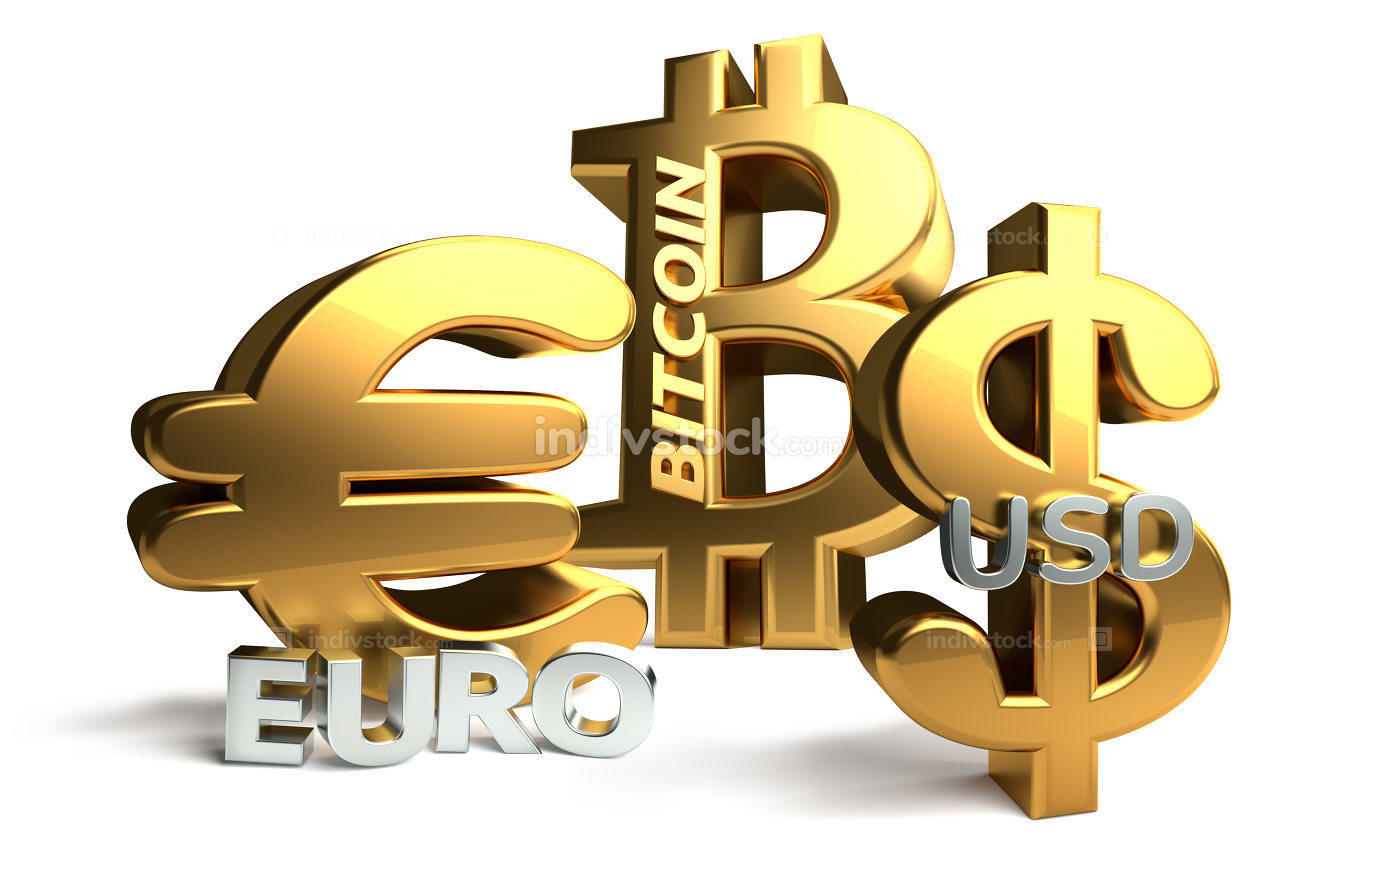 Euro Bitcoin US Dollar 3d rendering sybol golden